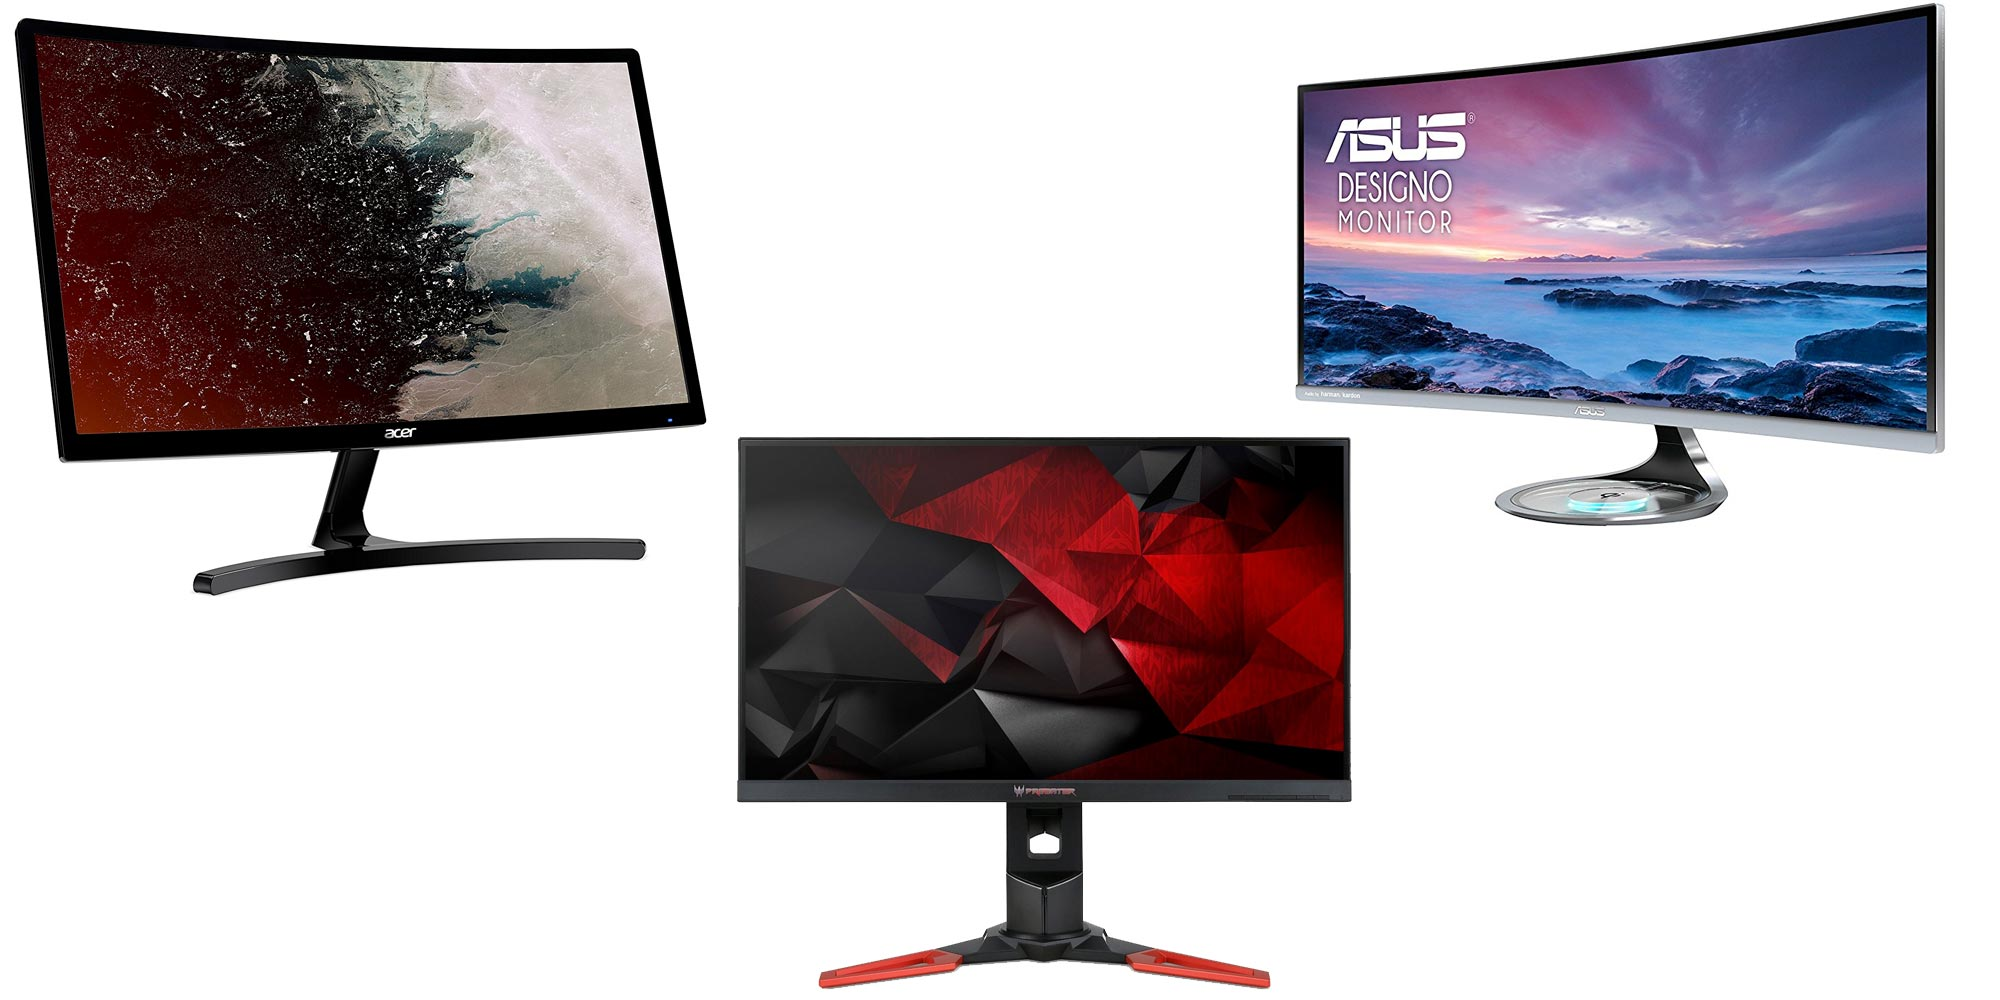 These monitors would make great upgrades to any Mac setup from $157 shipped